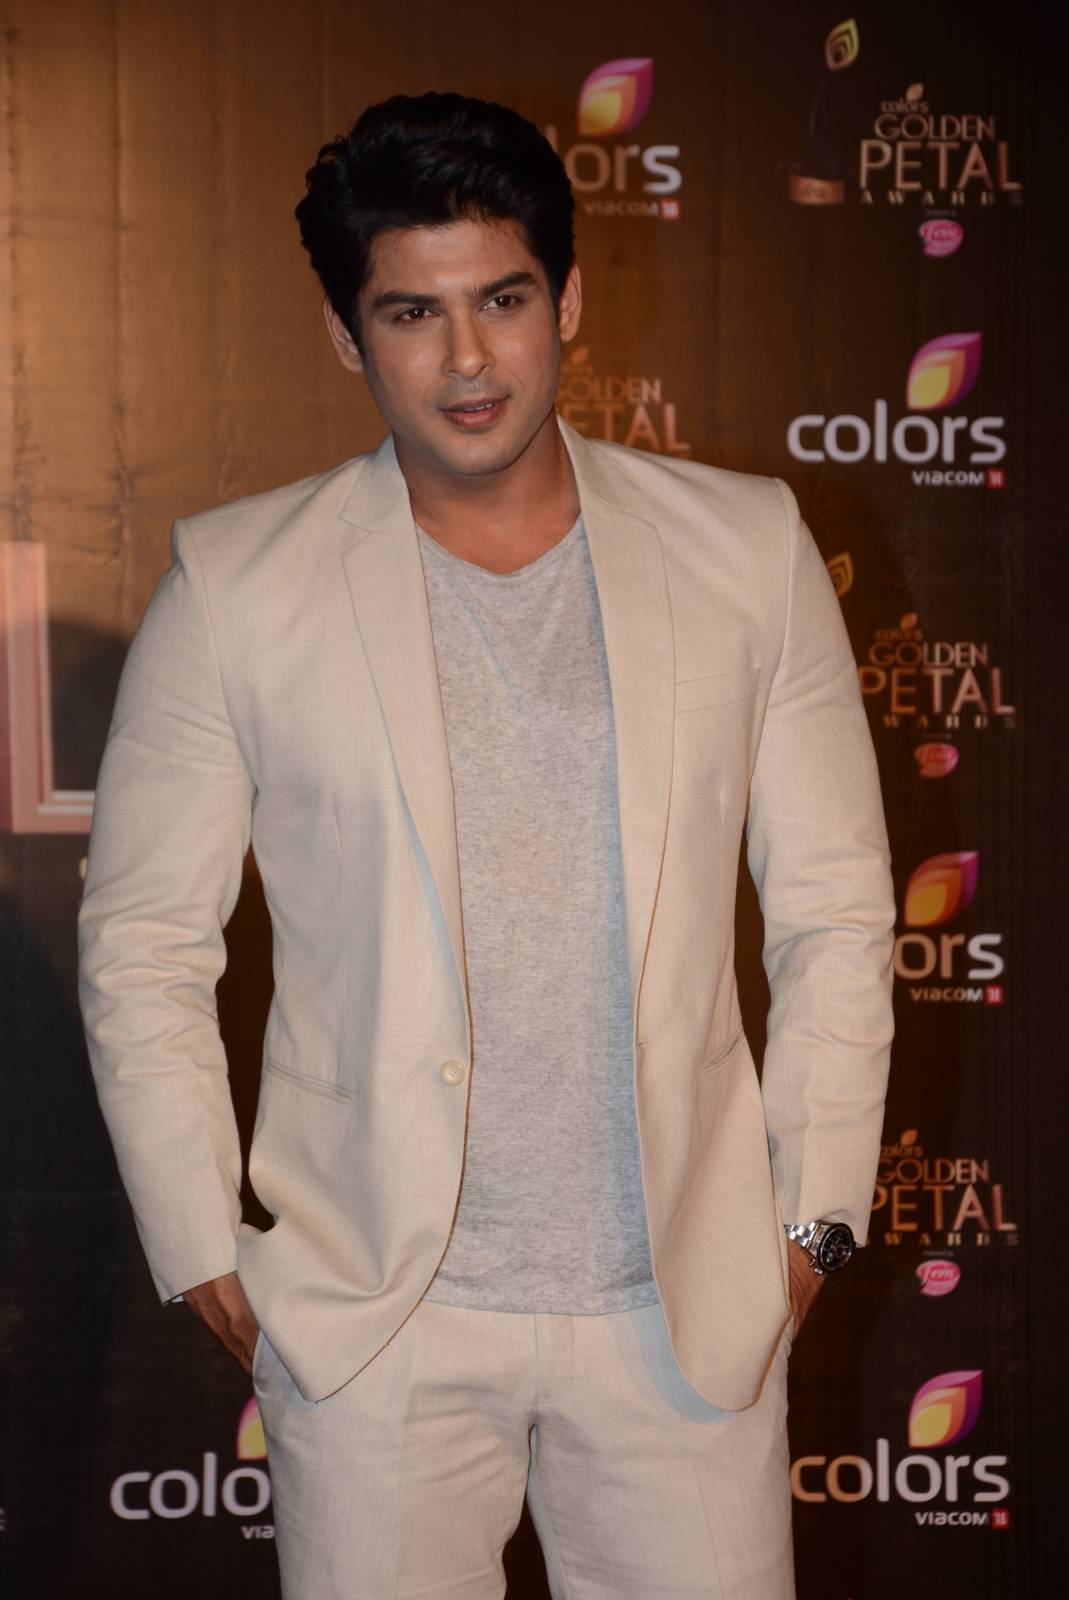 I thank everyone for loving me: Sidharth Shukla